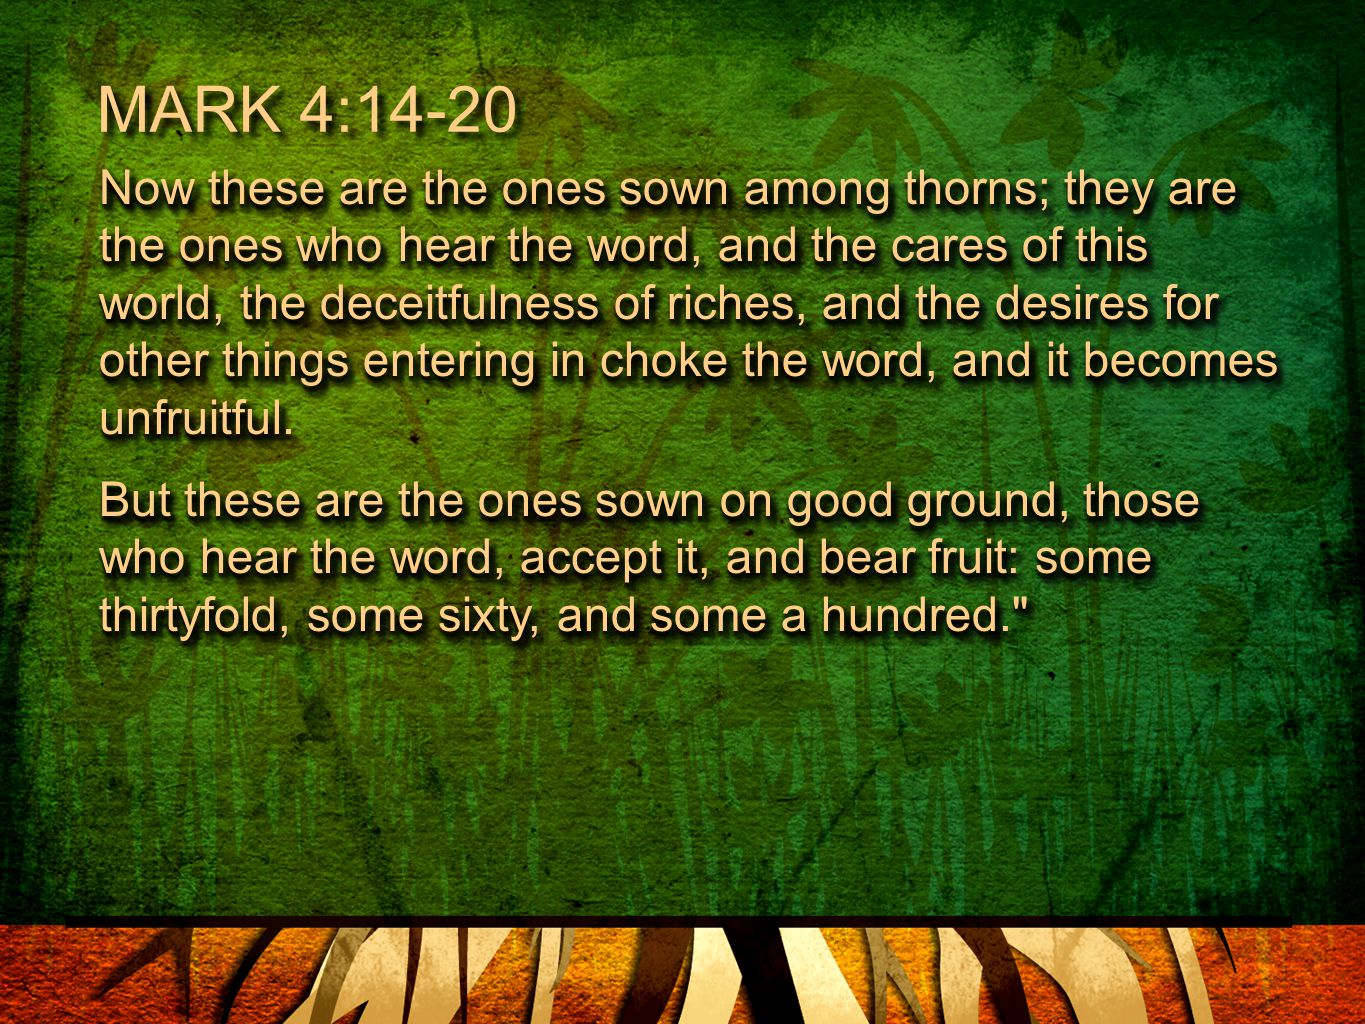 Now these are the ones sown among thorns; they are the ones who hear the word, and the cares of this world, the deceitfulness of riches, and the desires for other things entering in choke the word, and it becomes unfruitful.